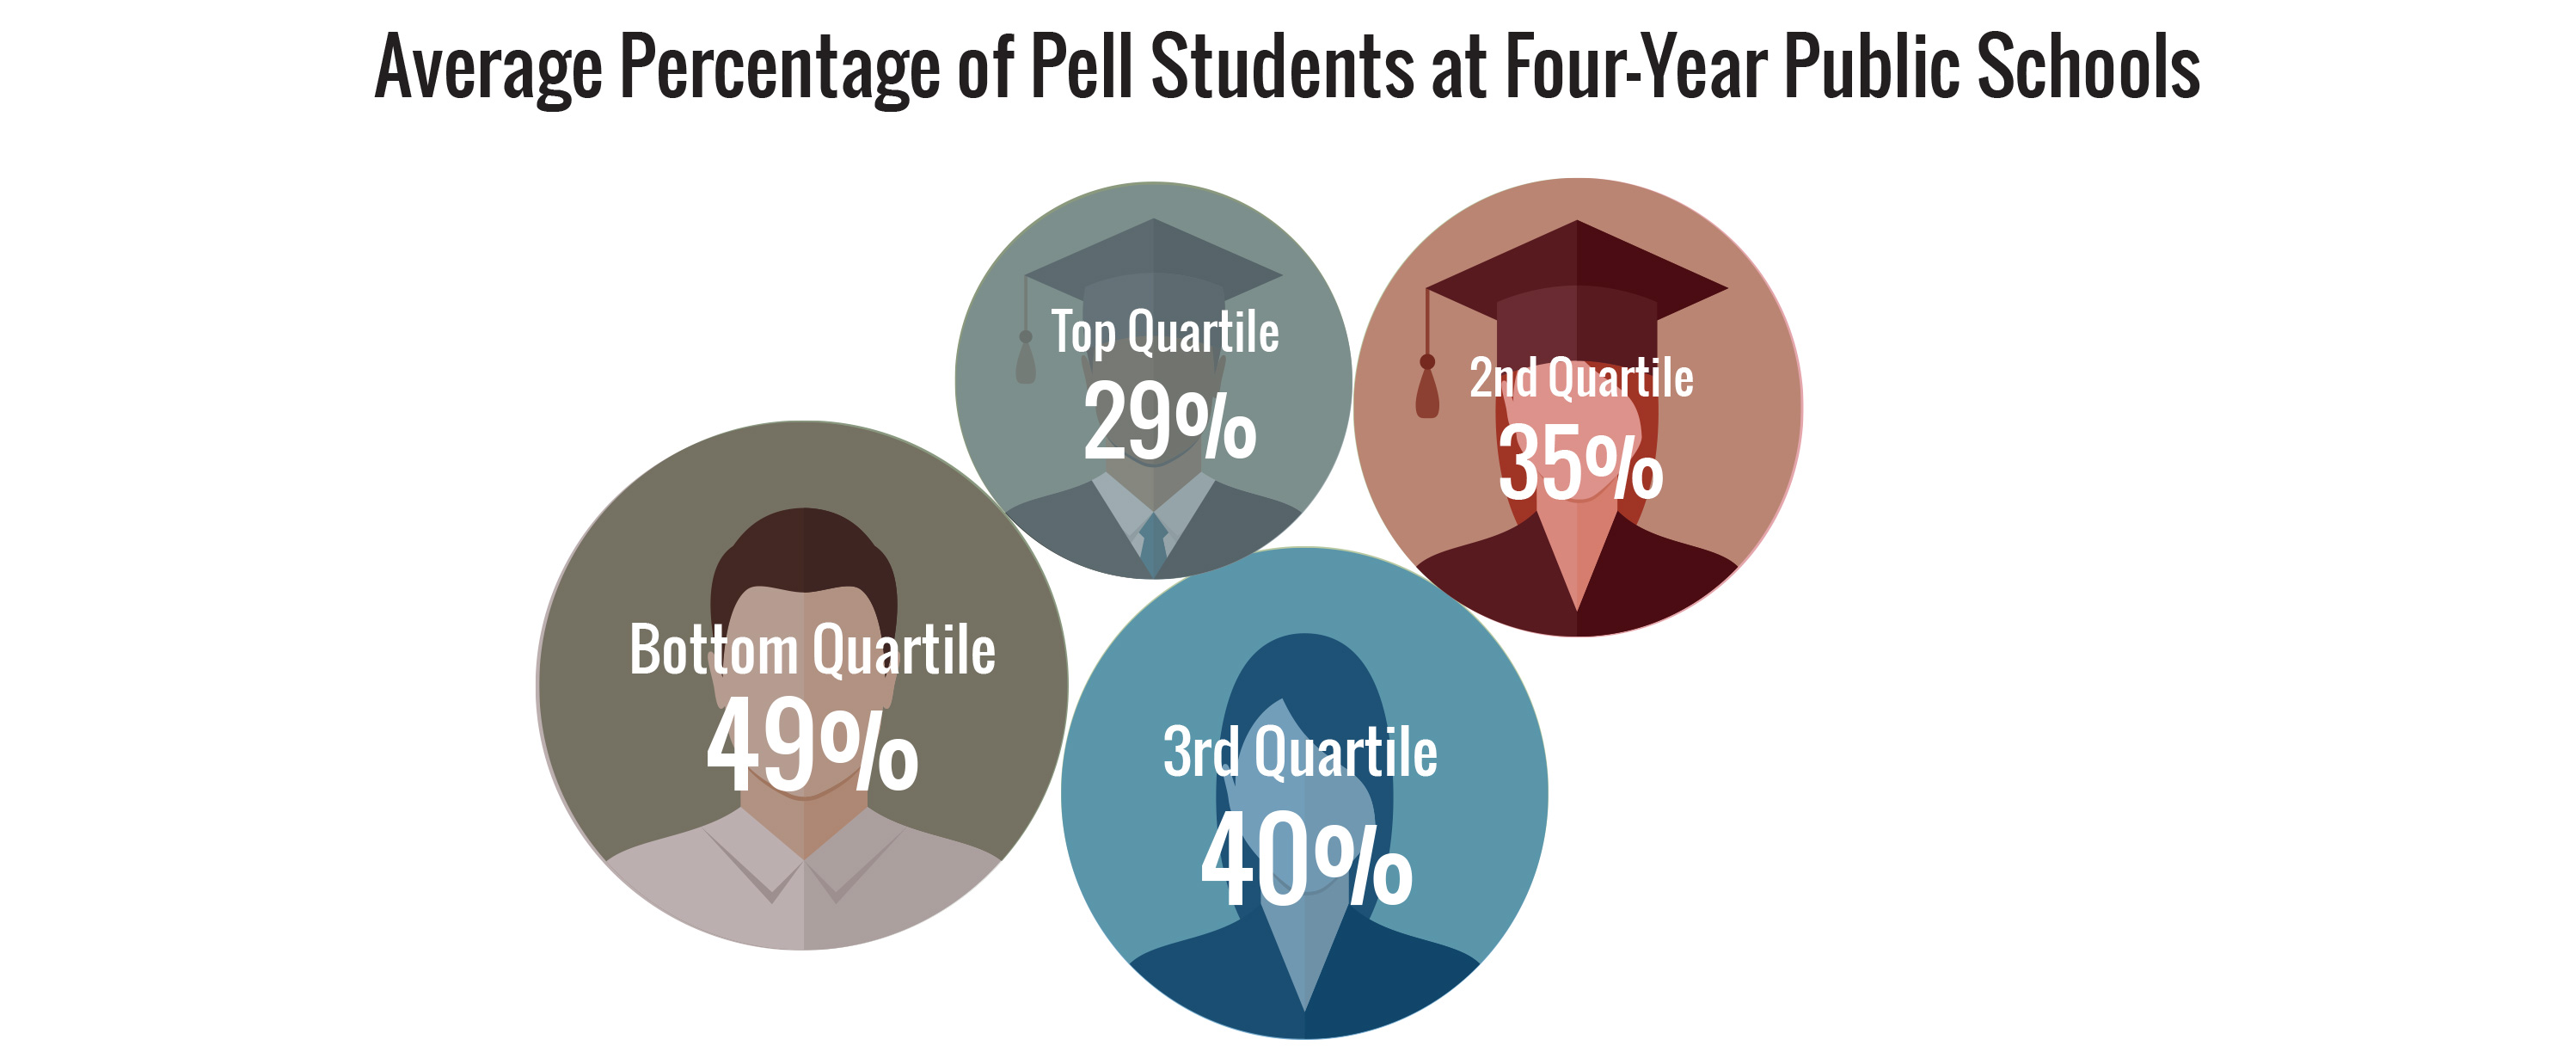 Average Percent of Pell Students